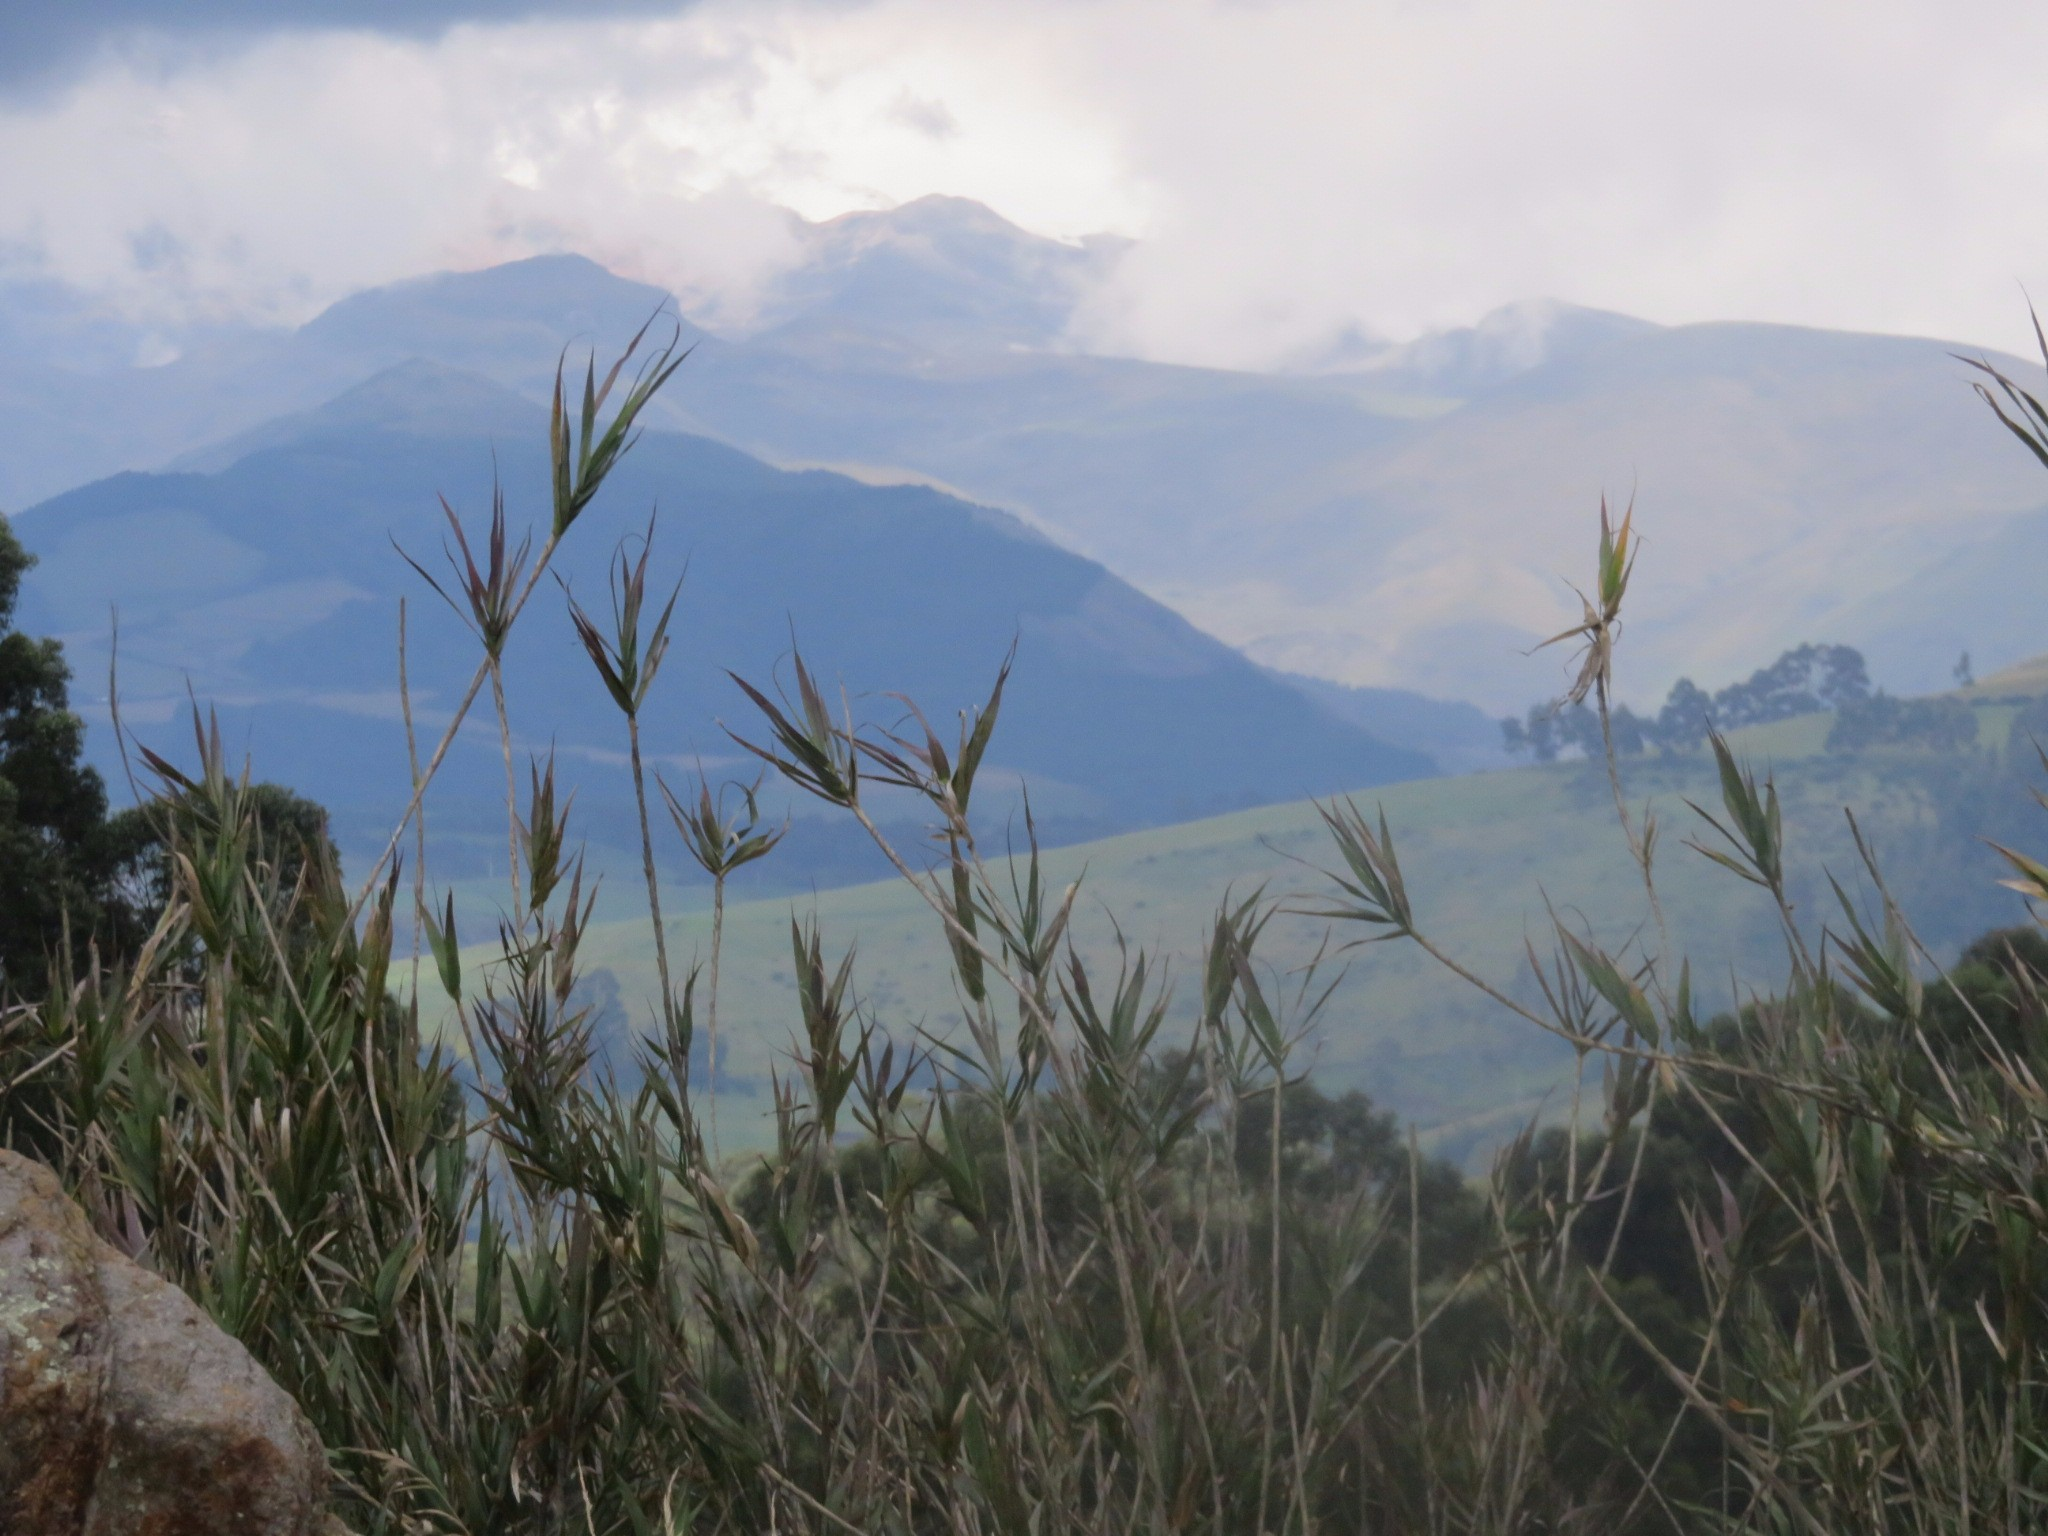 The environs of Quito are both high altitude and tropical with a tremendous diversity of flora and fauna.